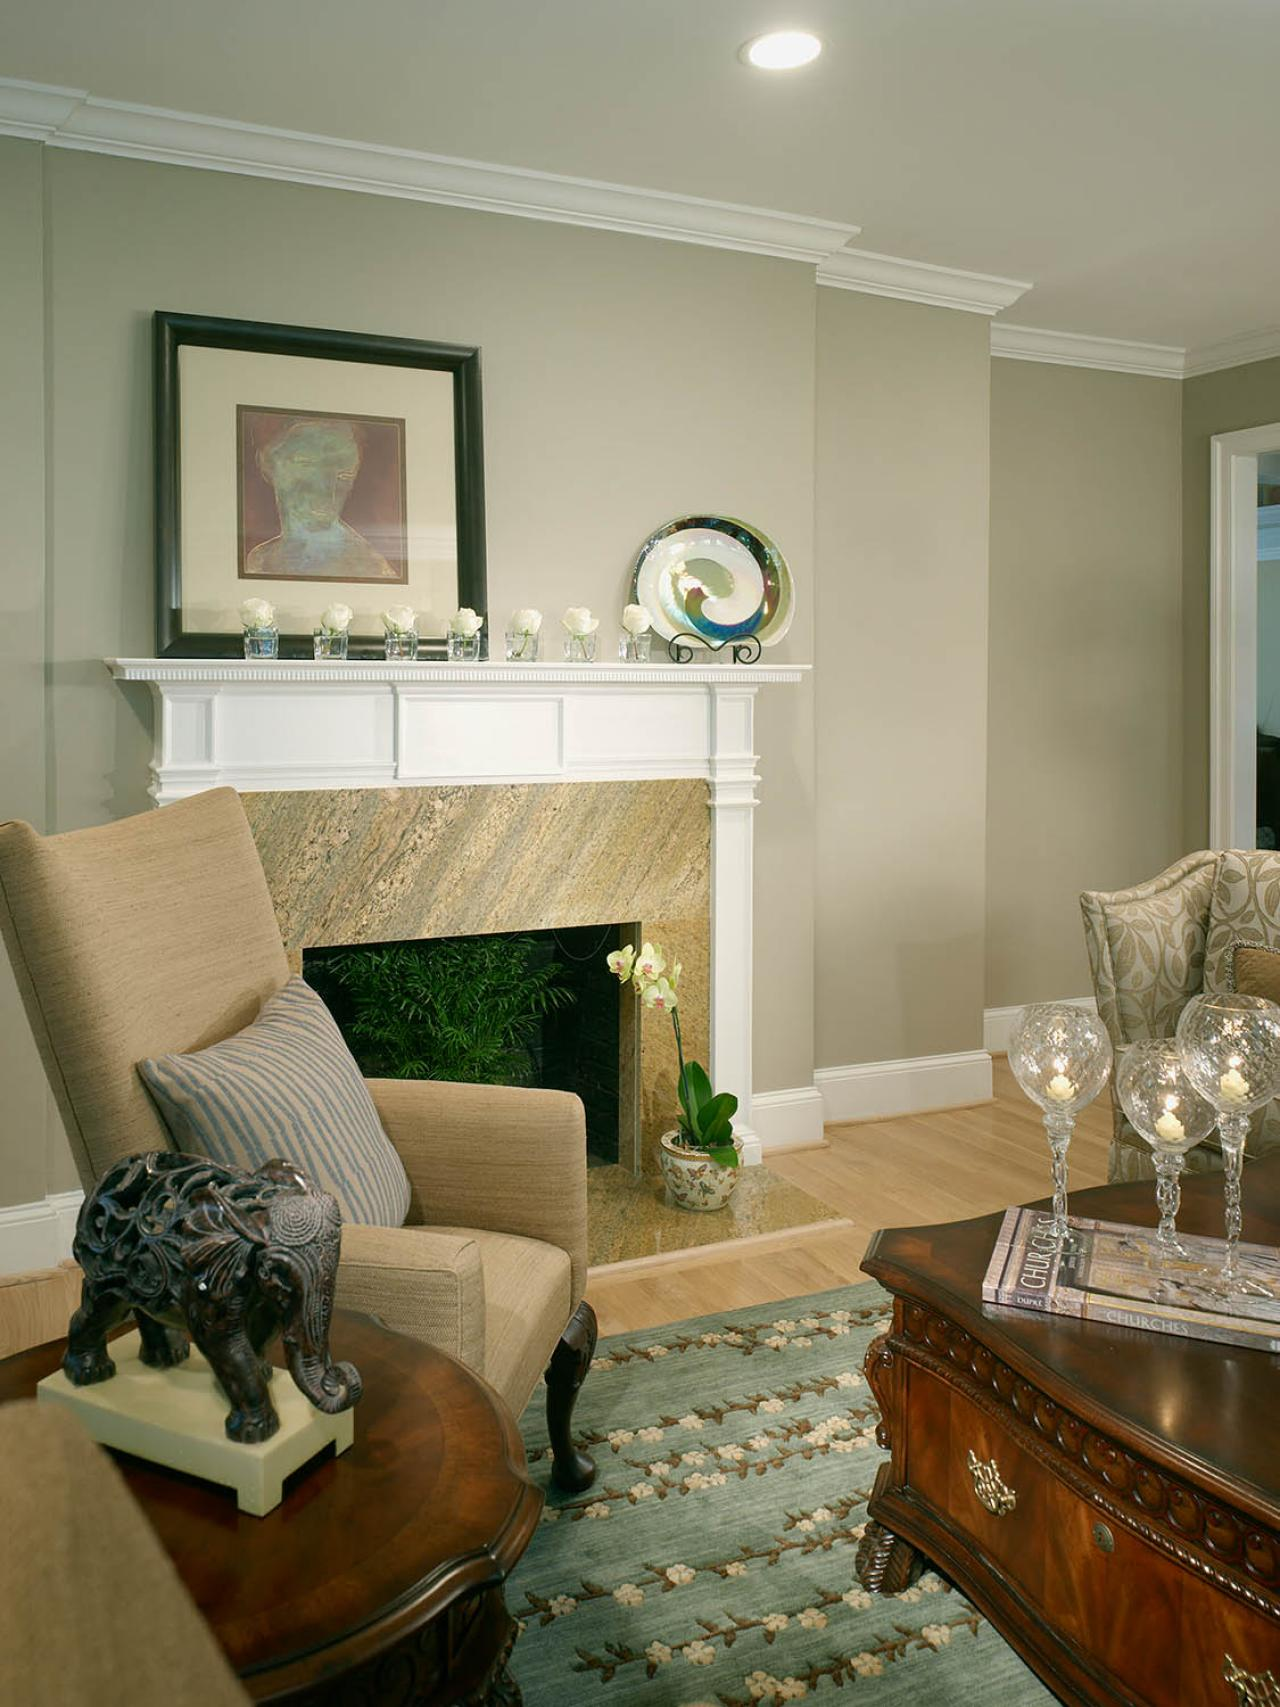 Small Living Rooms Decorating Hgtv: Traditional Neutral Living Room With Fireplace